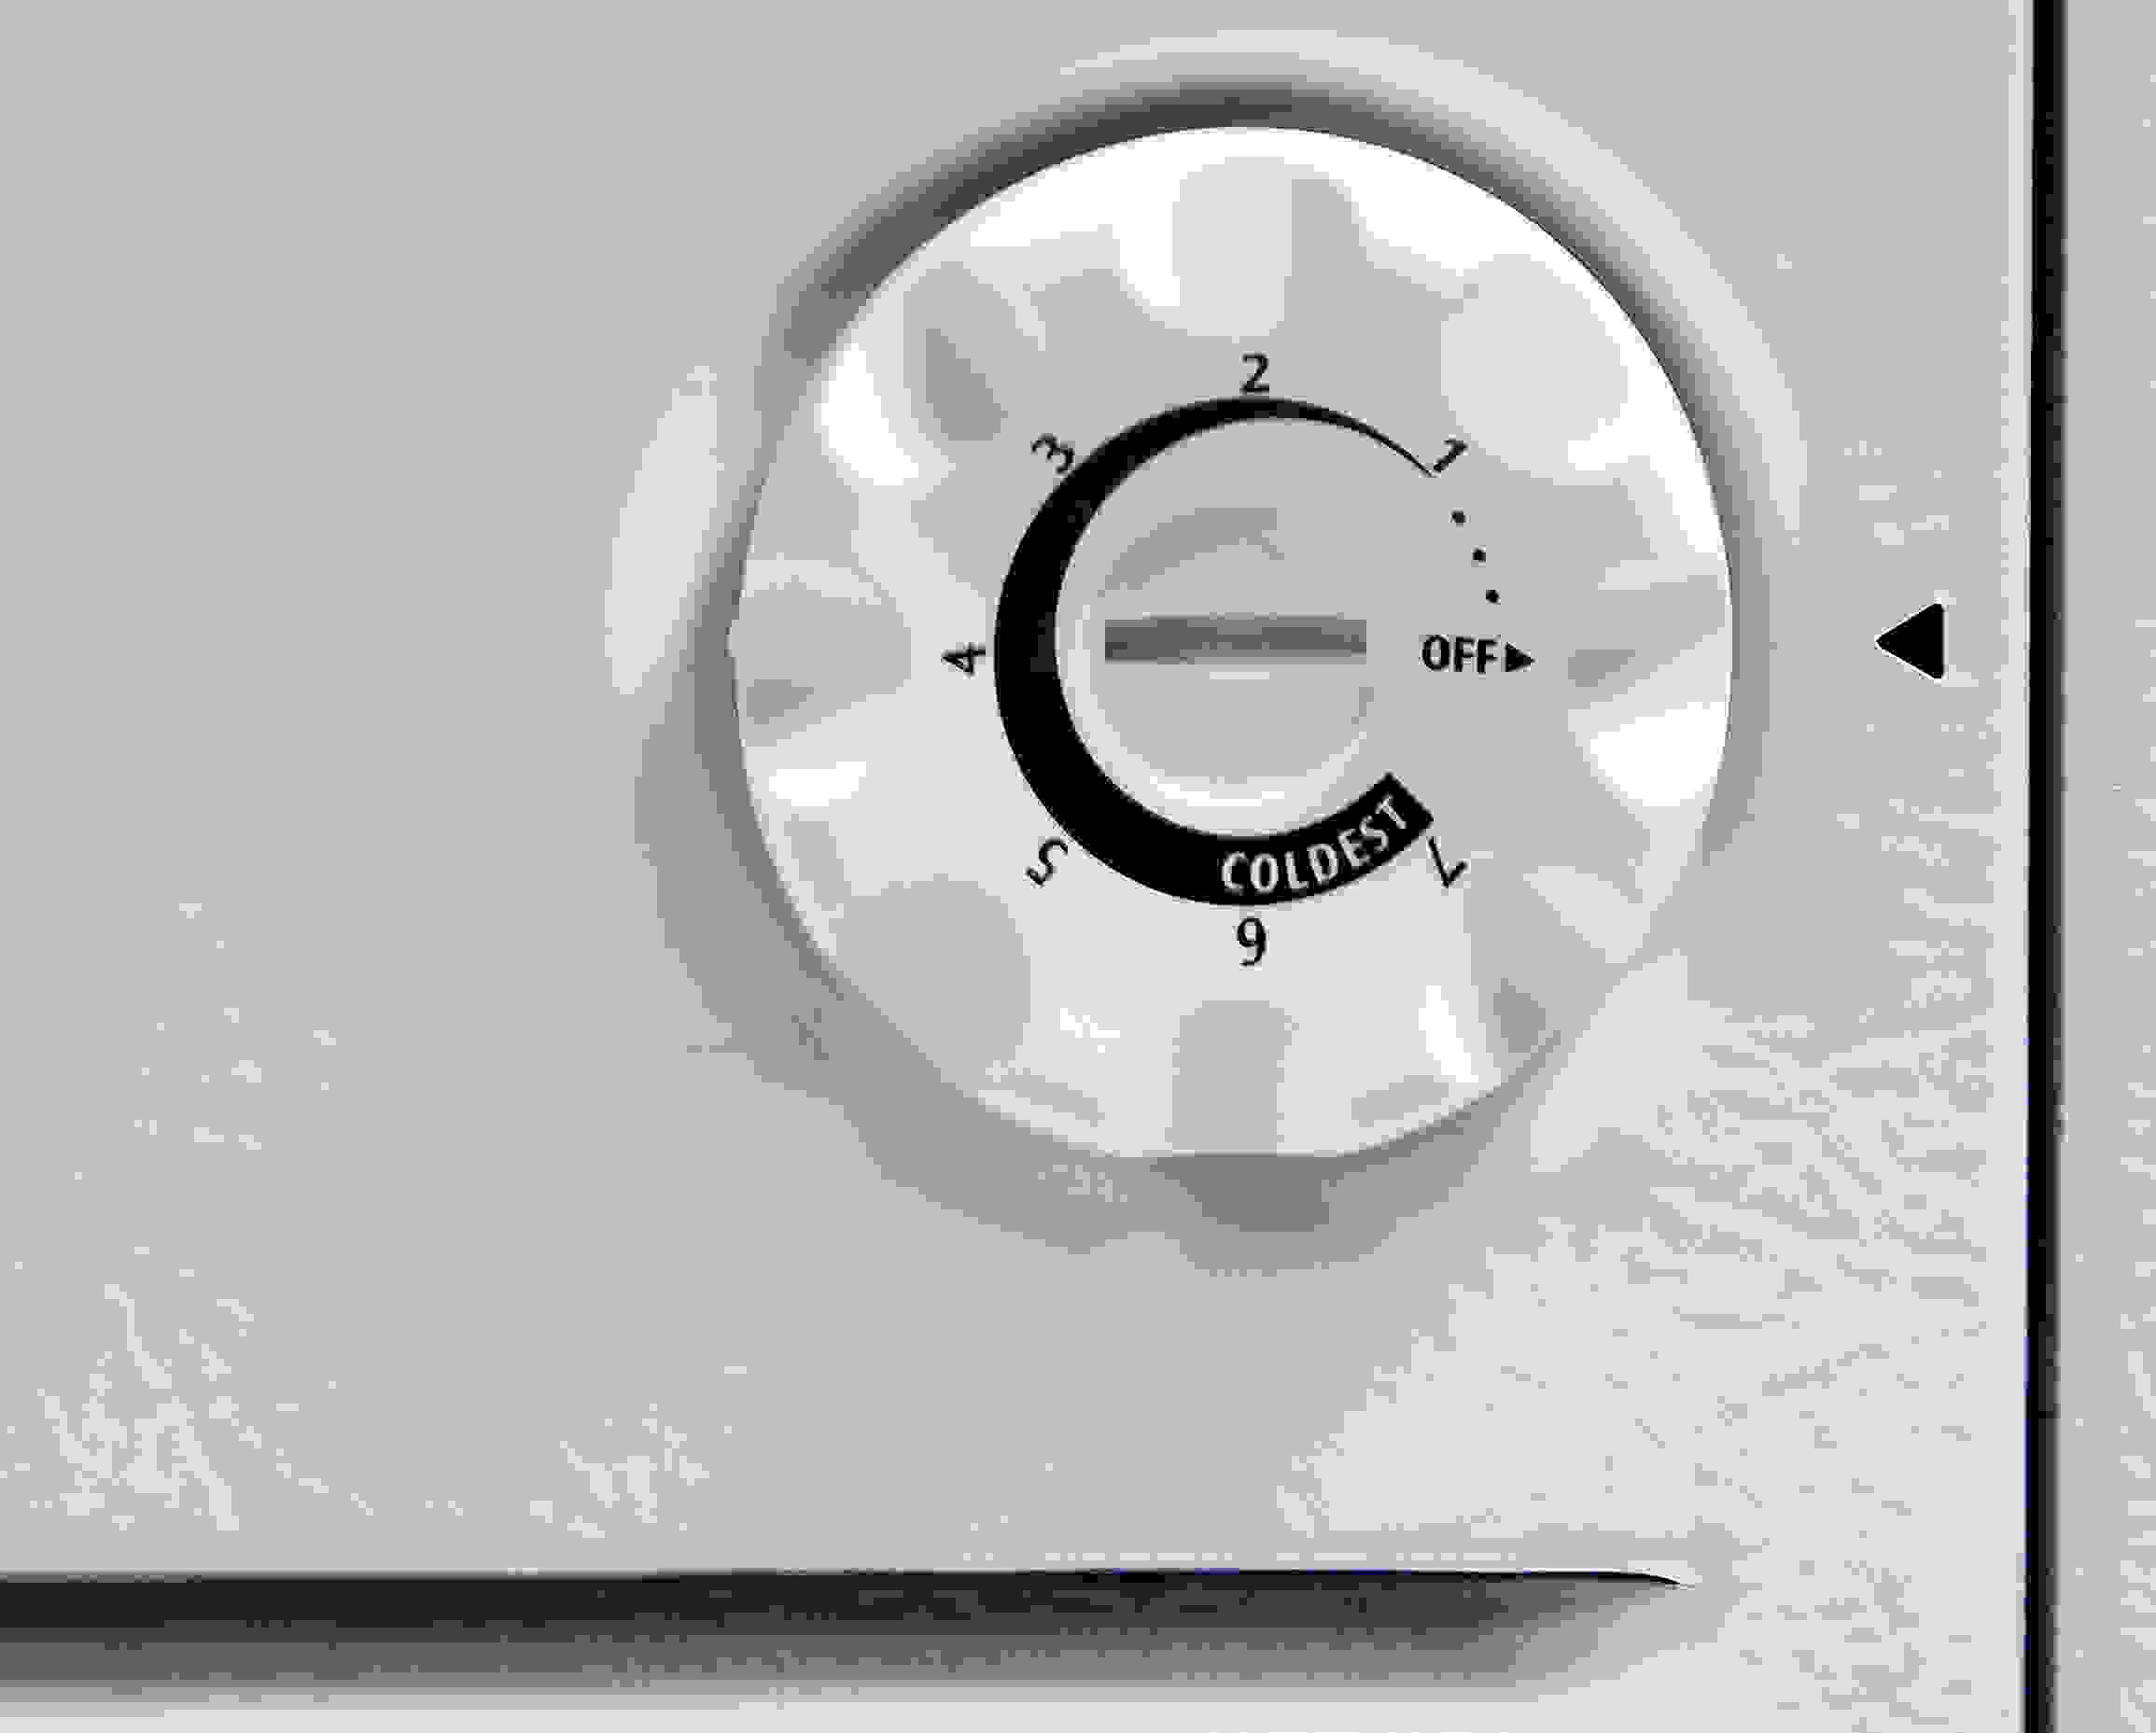 A standard dial thermostat is found near the bottom of the Kenmore 16542 on its left side.